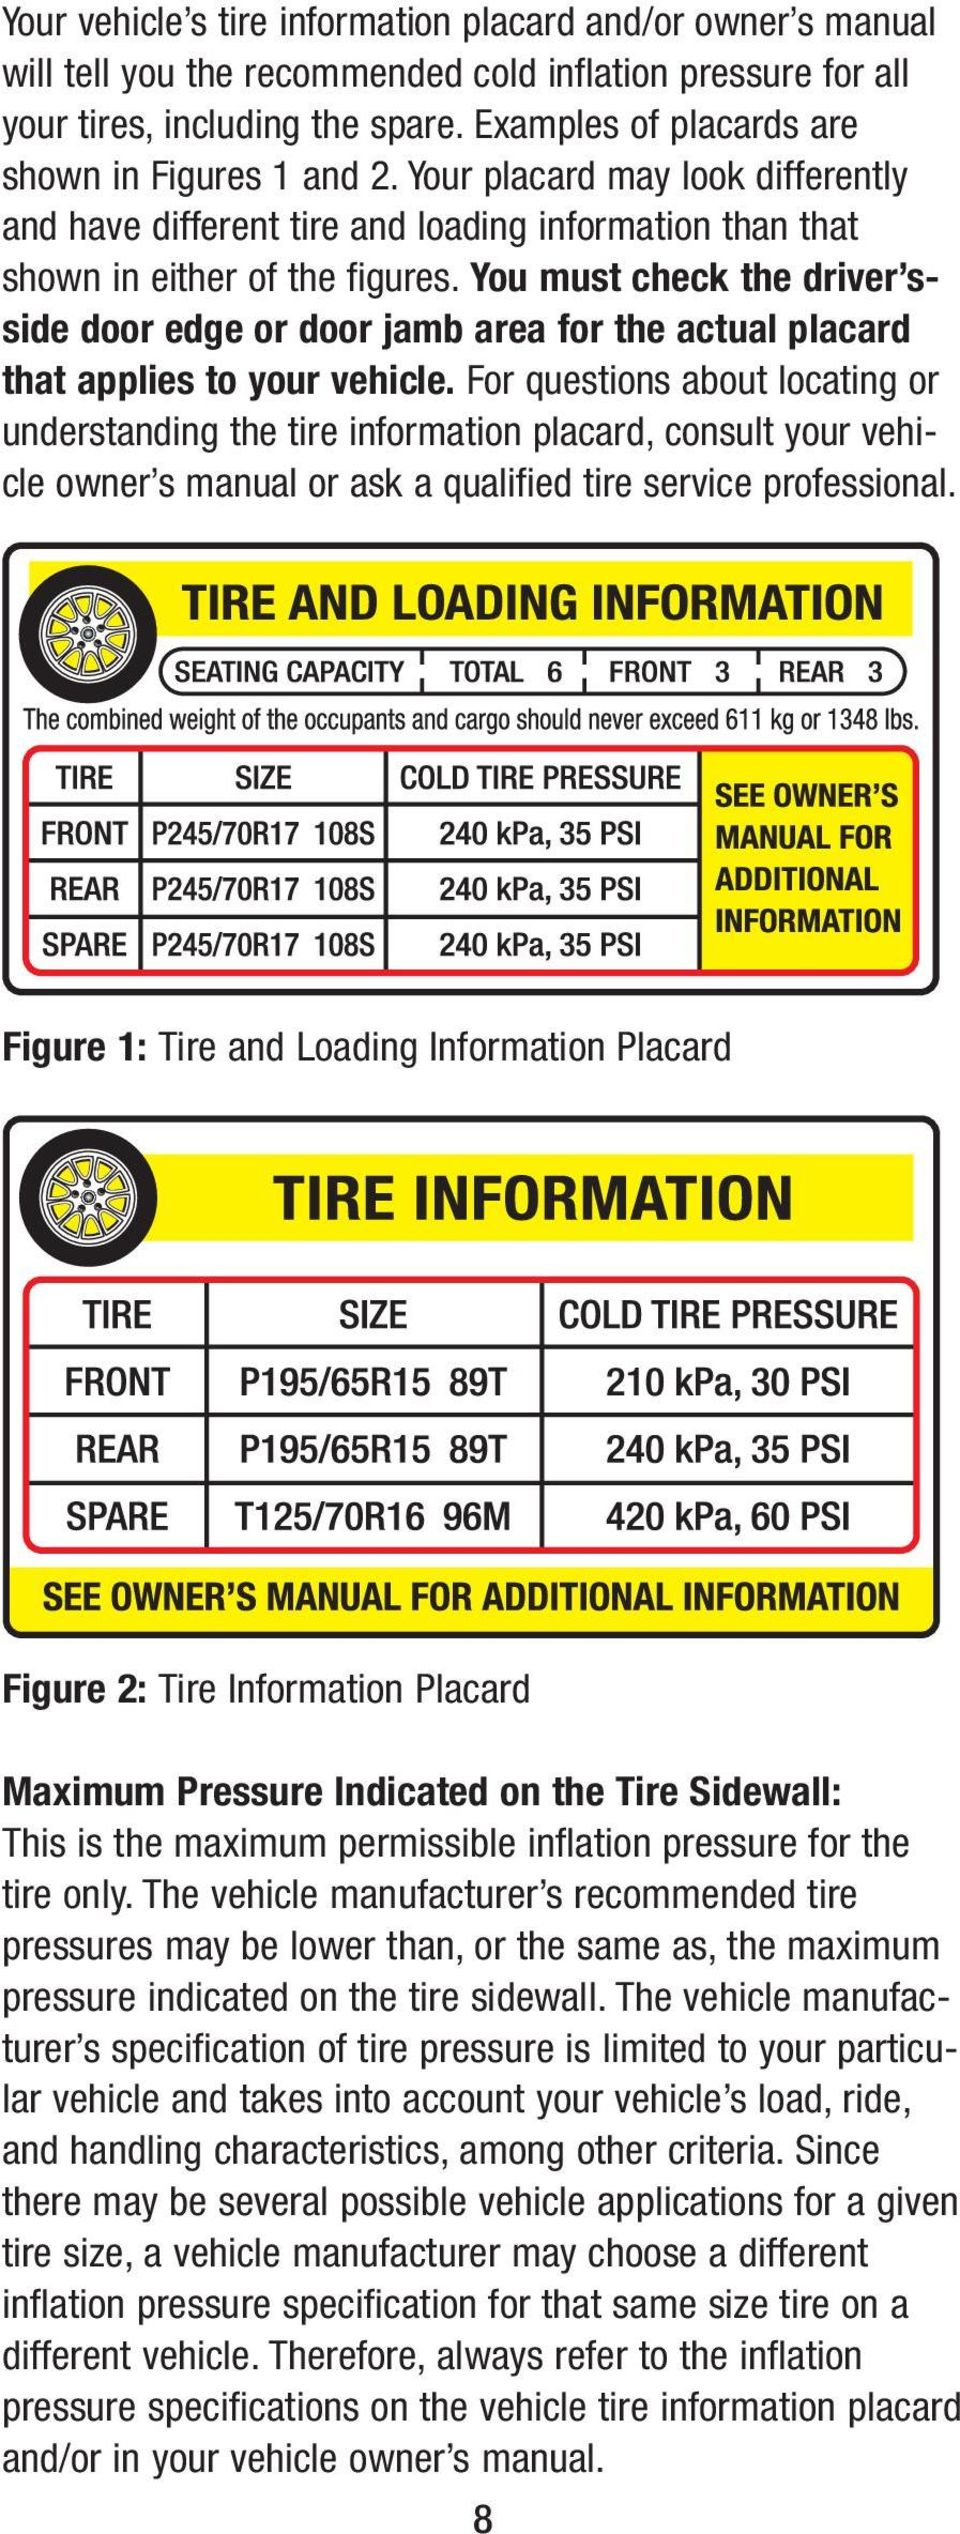 Tire Care Basics Inflate Rotate Evaluate 3 Maintenance Rotation Diagrams For Vehicles With Samesize Nondirectional Tires You Must Check The Driver Sside Door Edge Or Jamb Area Actual Placard